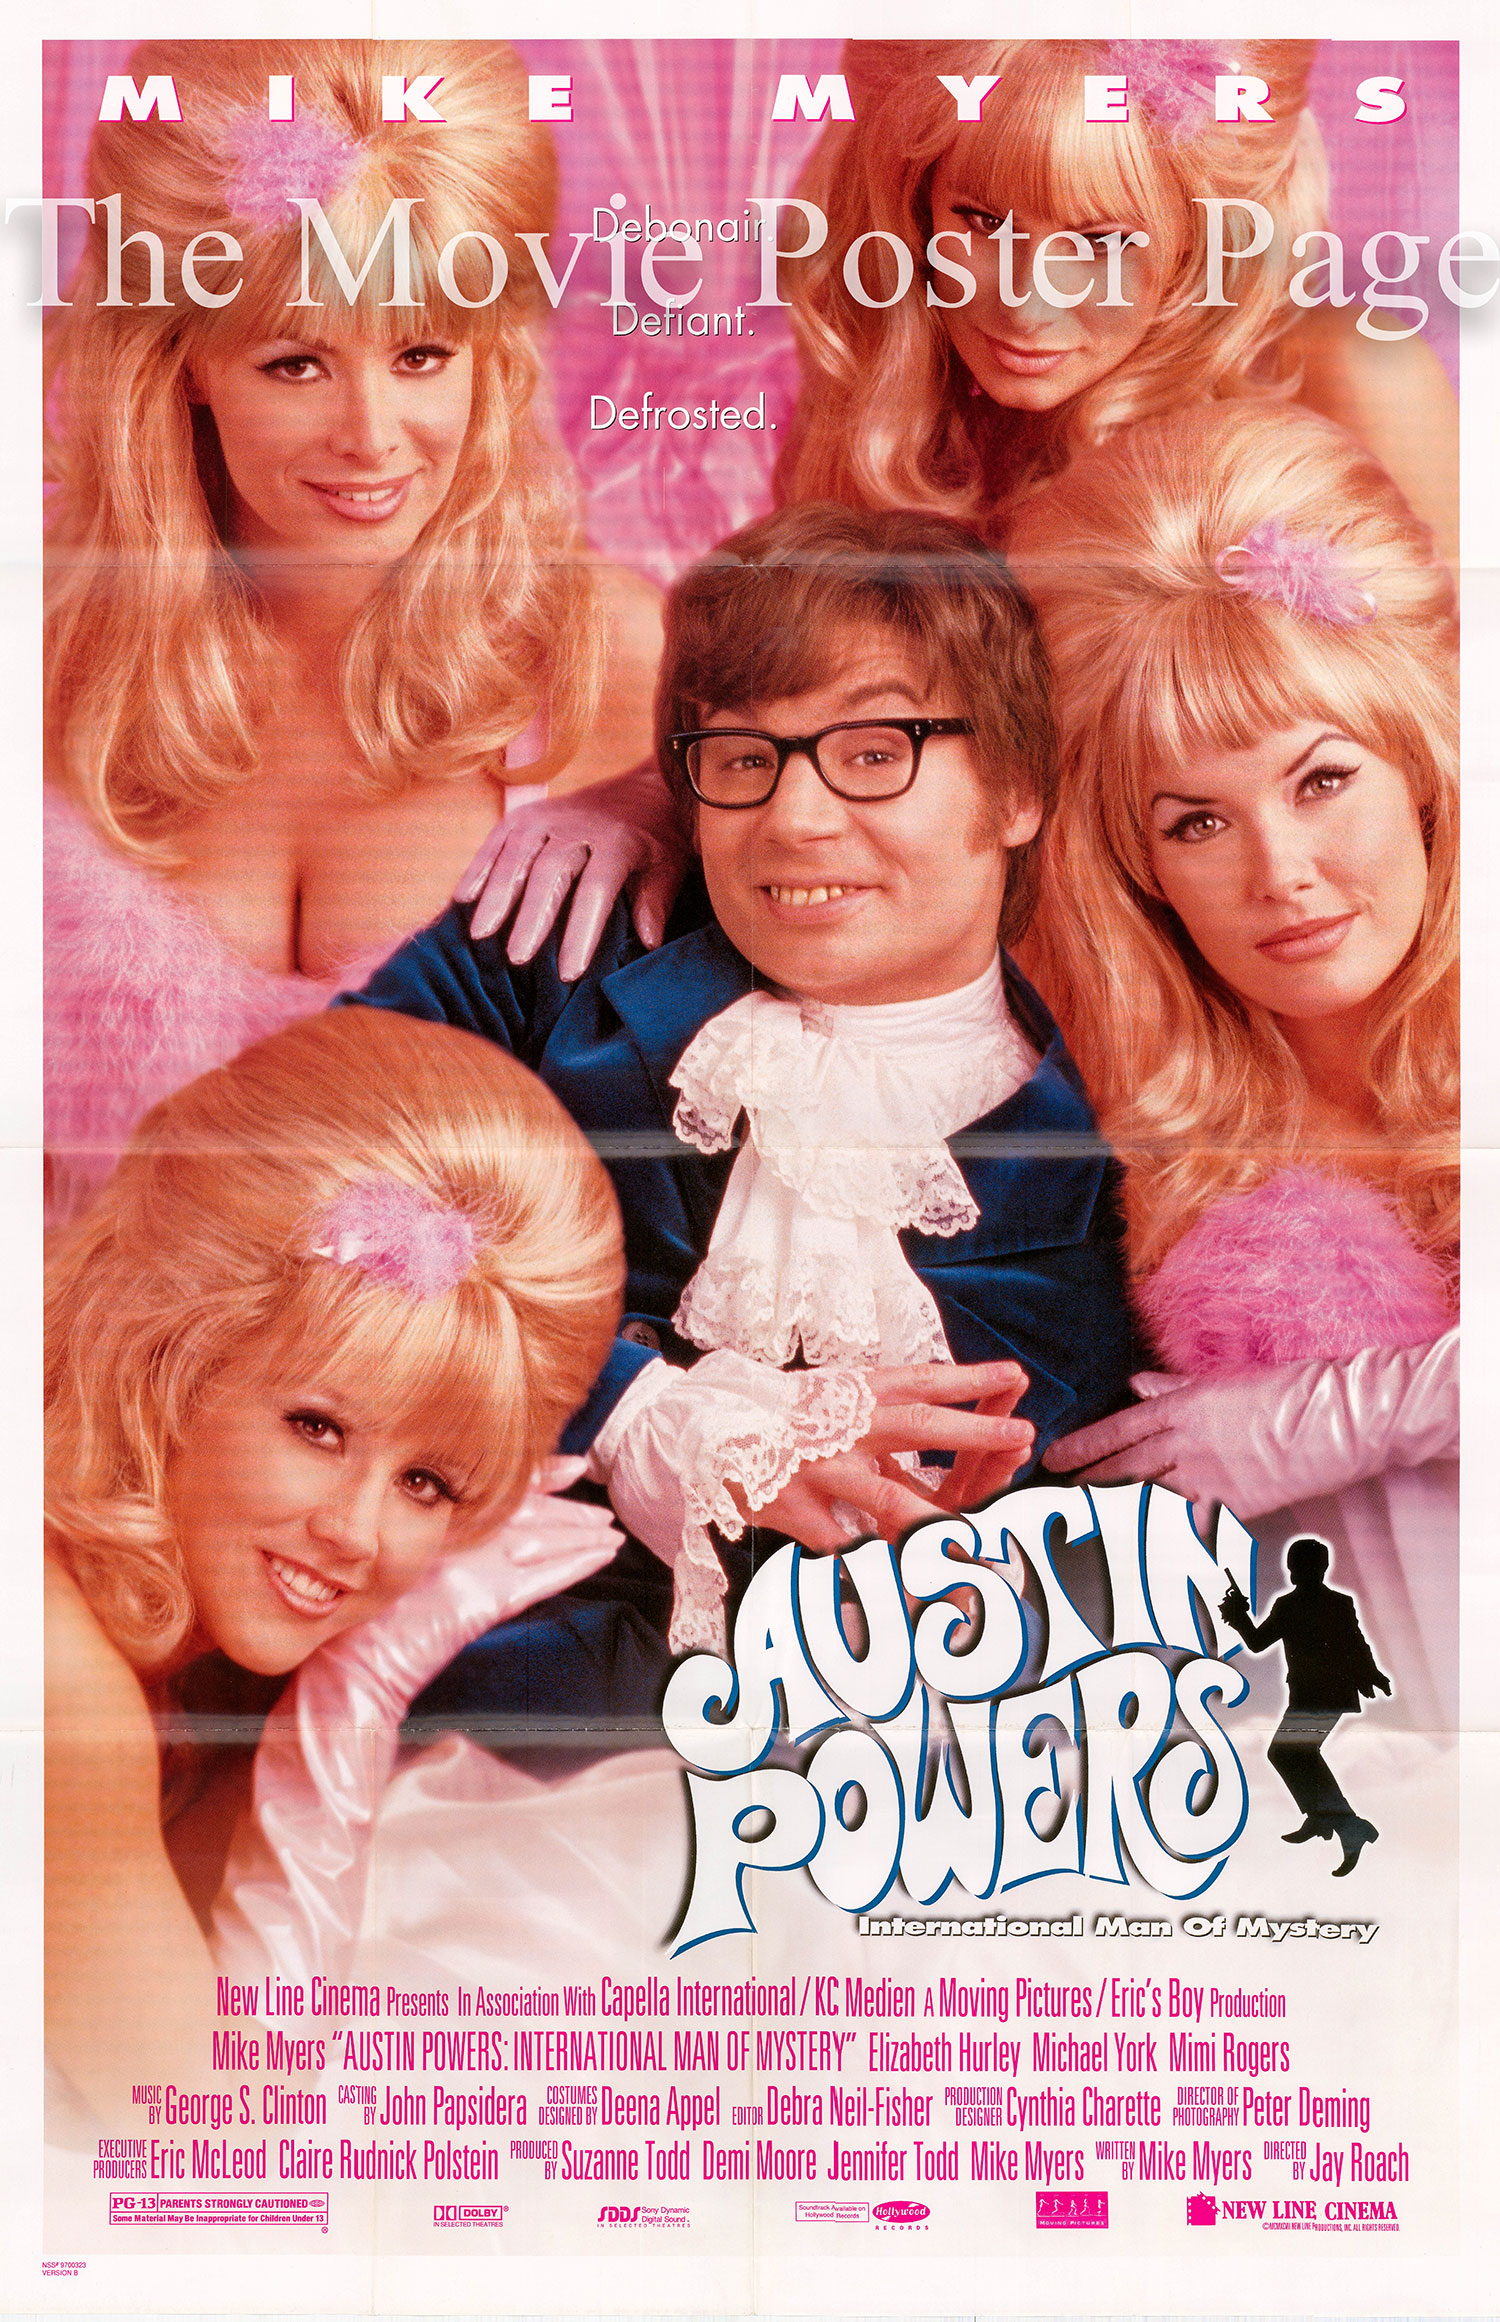 Pictured is a US one-sheet poster for the 1997 Jay Roach film Austin Powers: International Man of Mystery, starring Mike Myers.